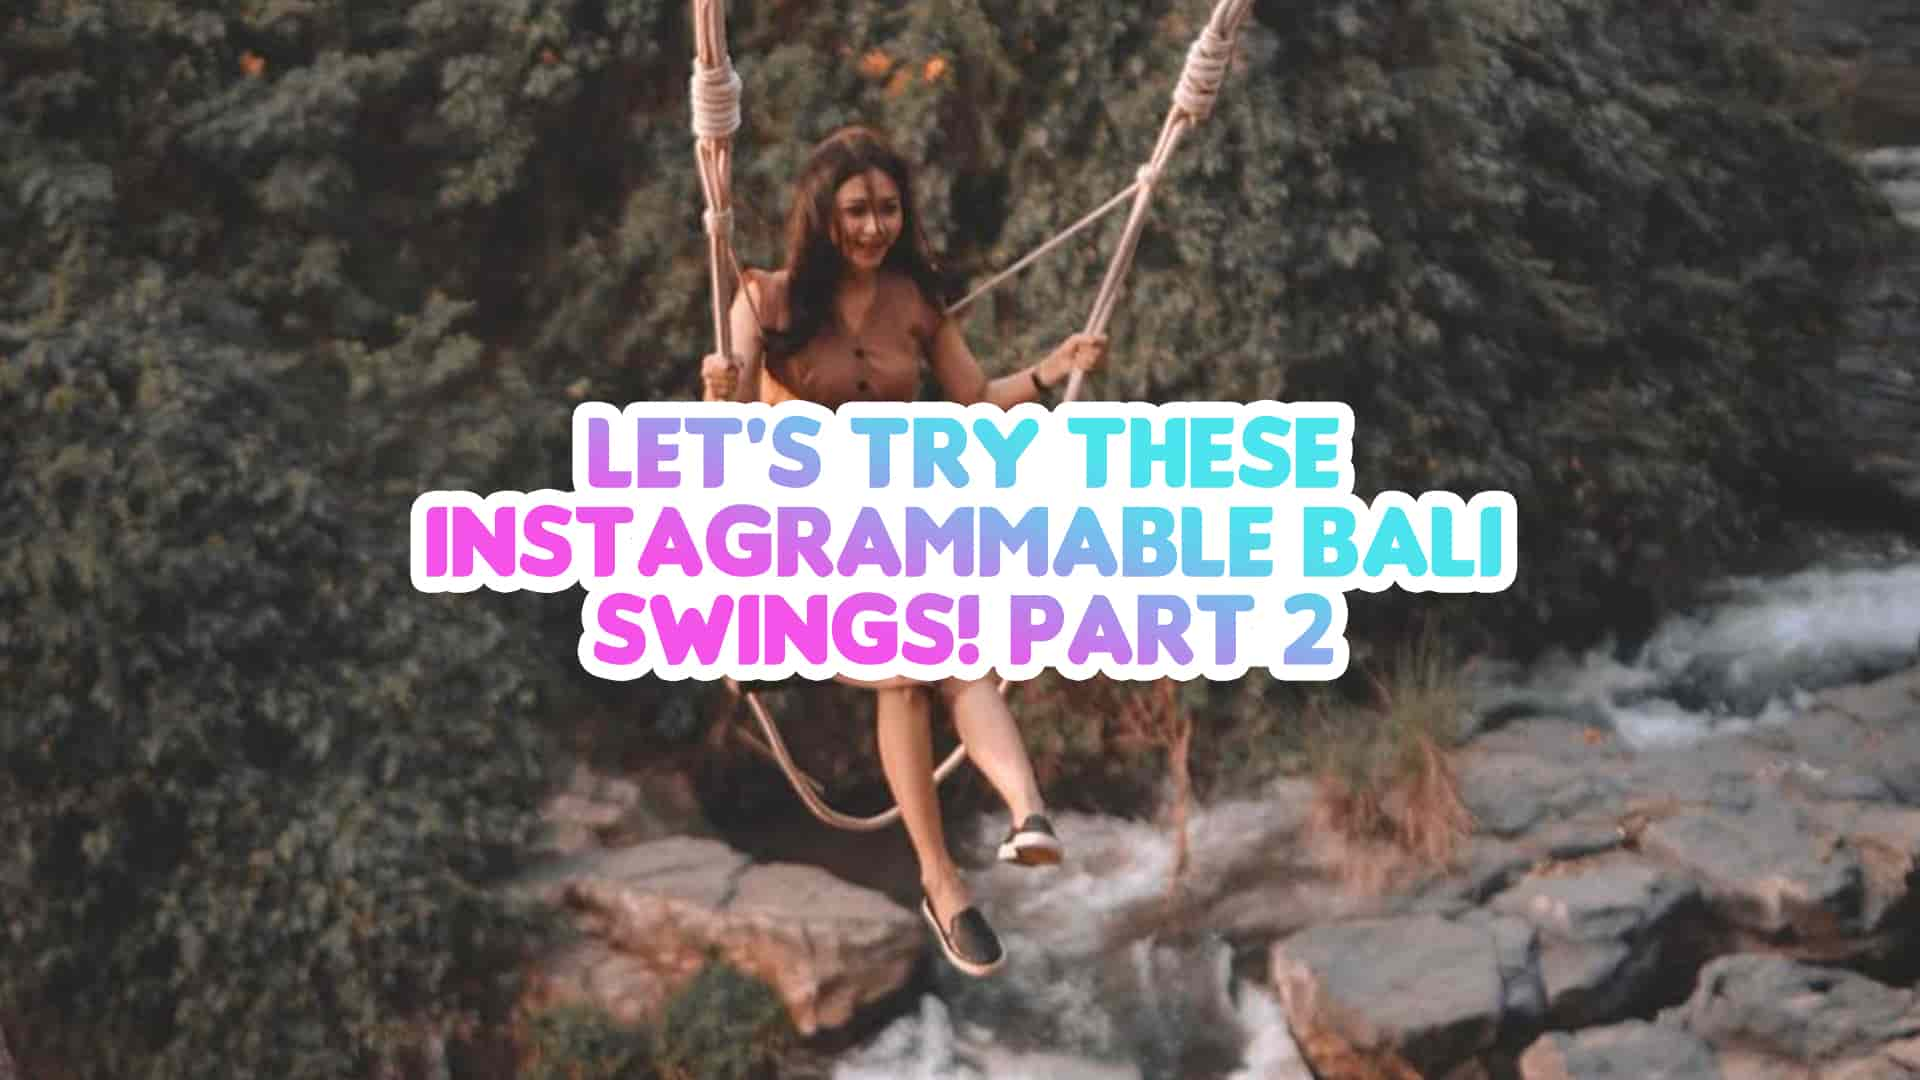 Let's try these Bali Swings!